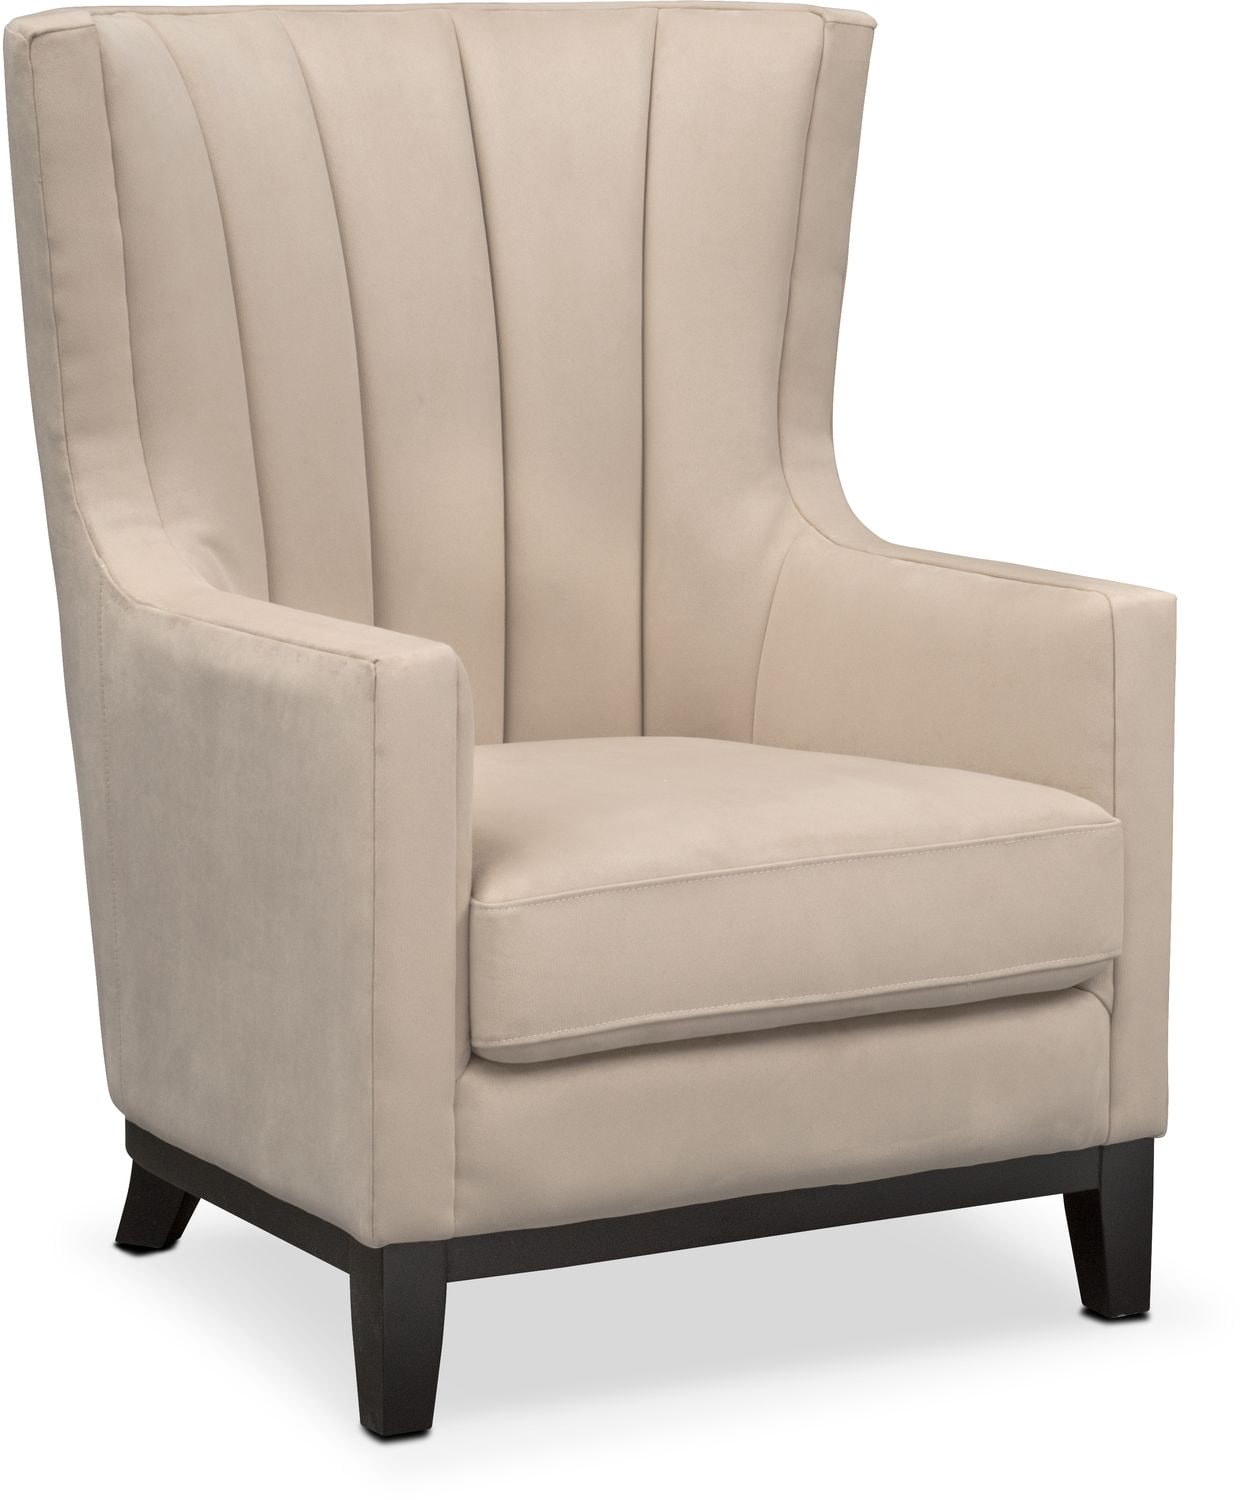 Accent and Occasional Furniture - Brianna Accent Chair - Taupe